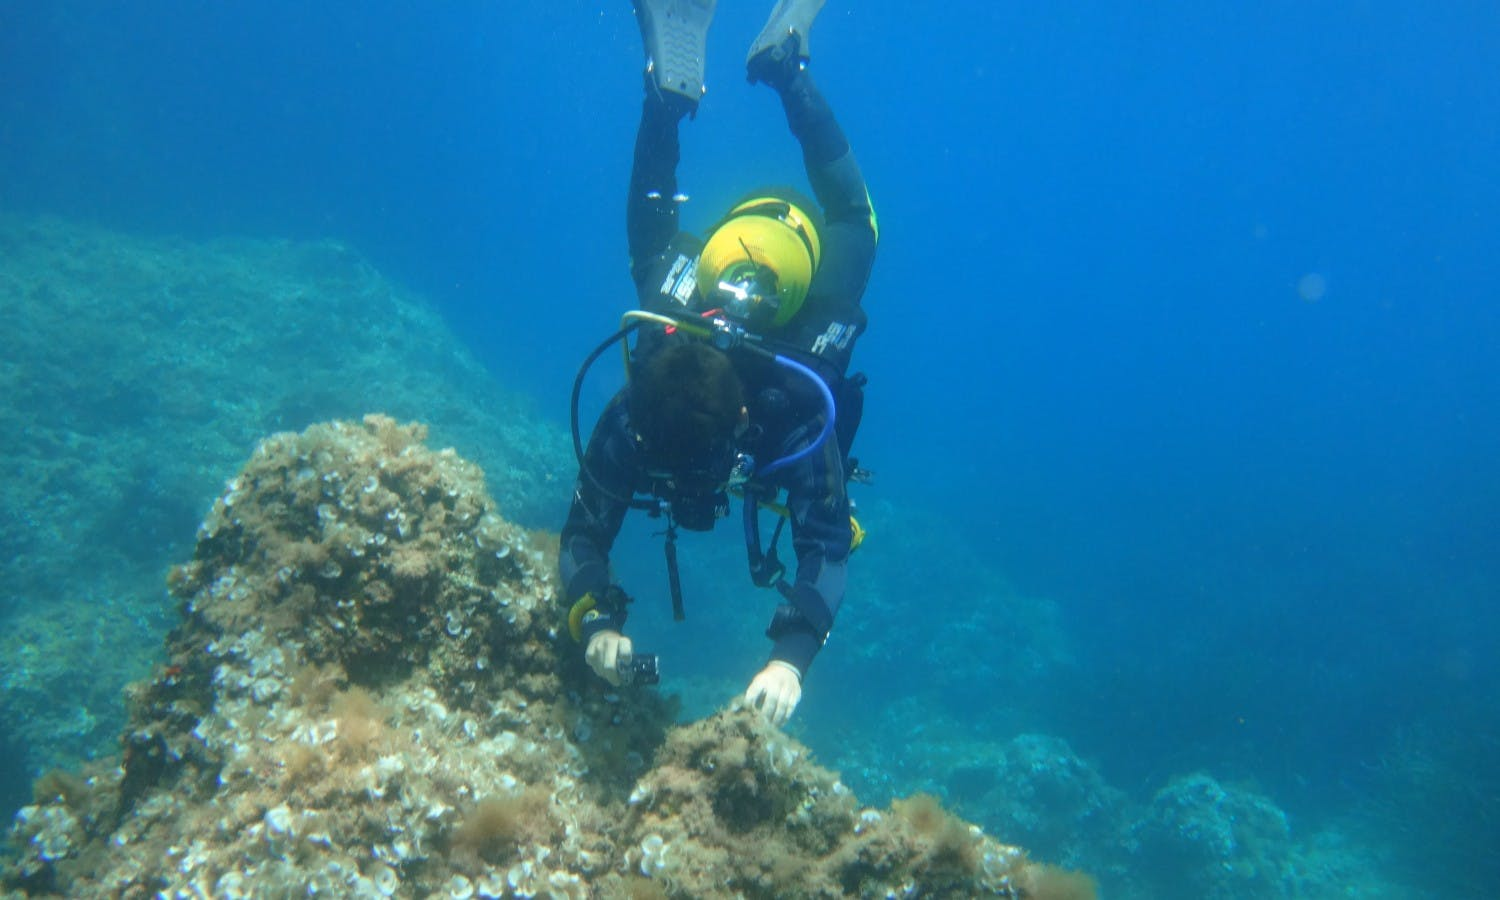 Diving experience for beginners in Santa Ponsa